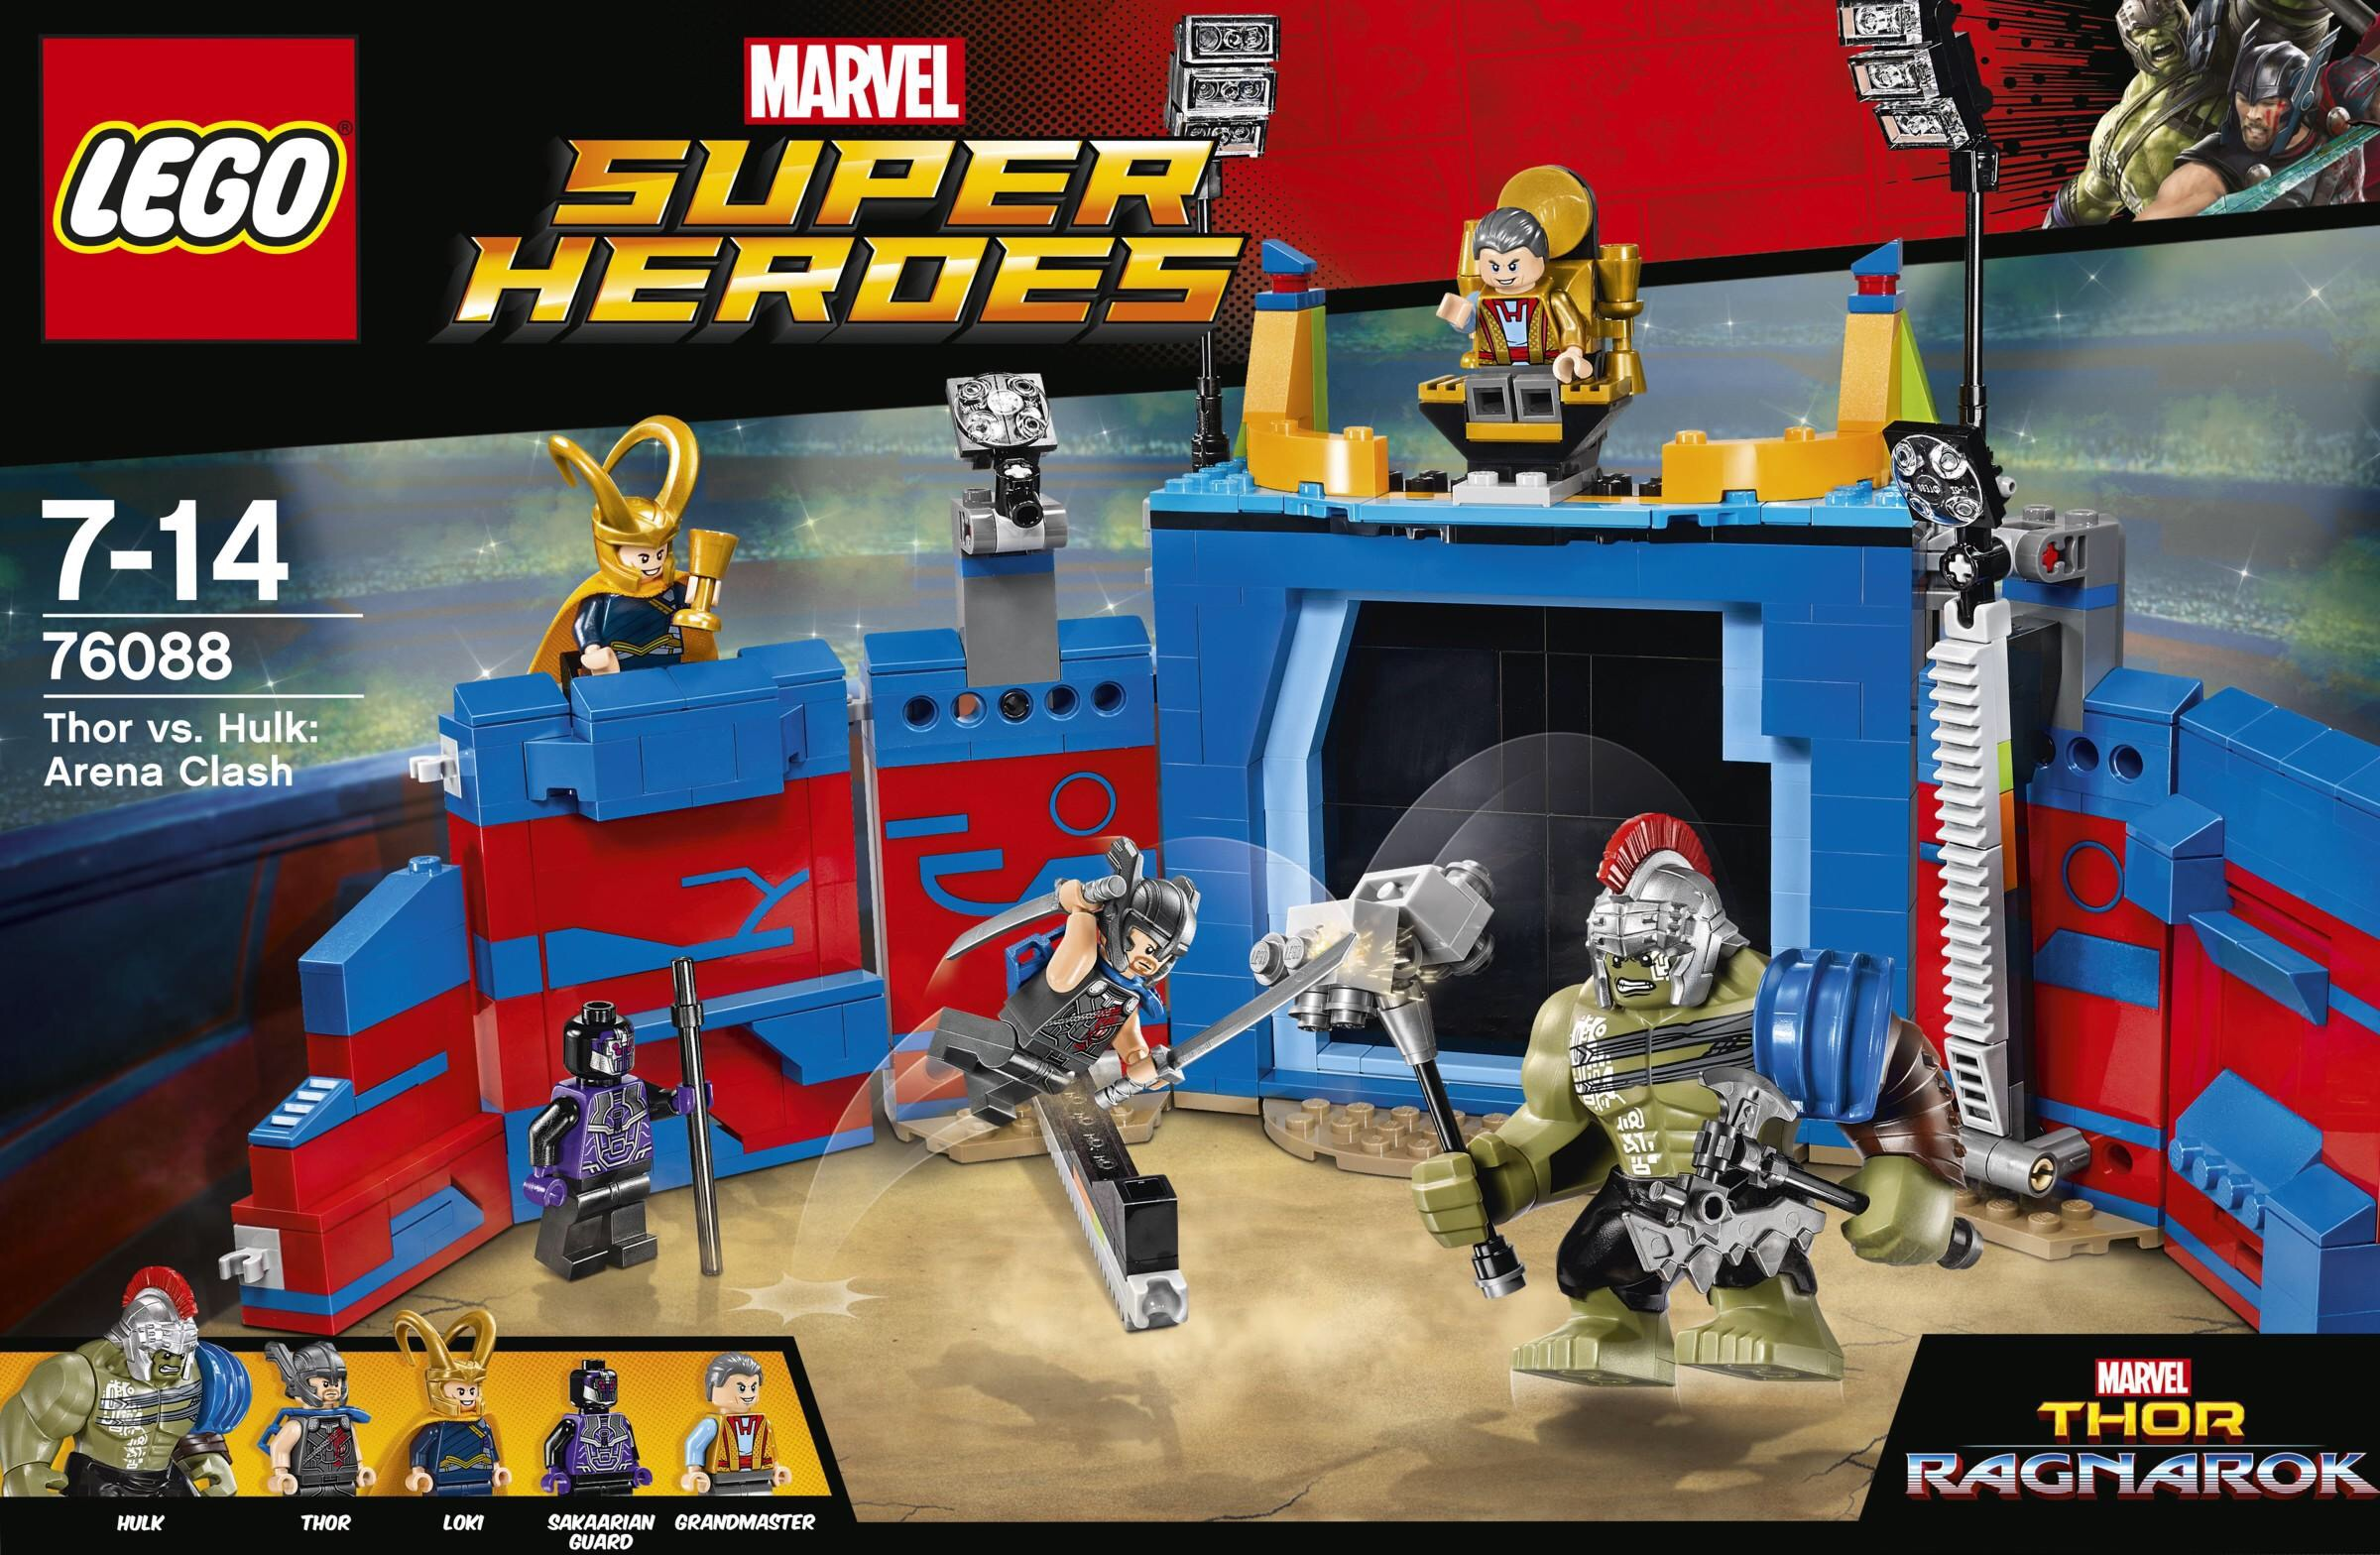 LEGO Thor Ragnarok Sets Revealed & Photos! Gladiator Hulk ...